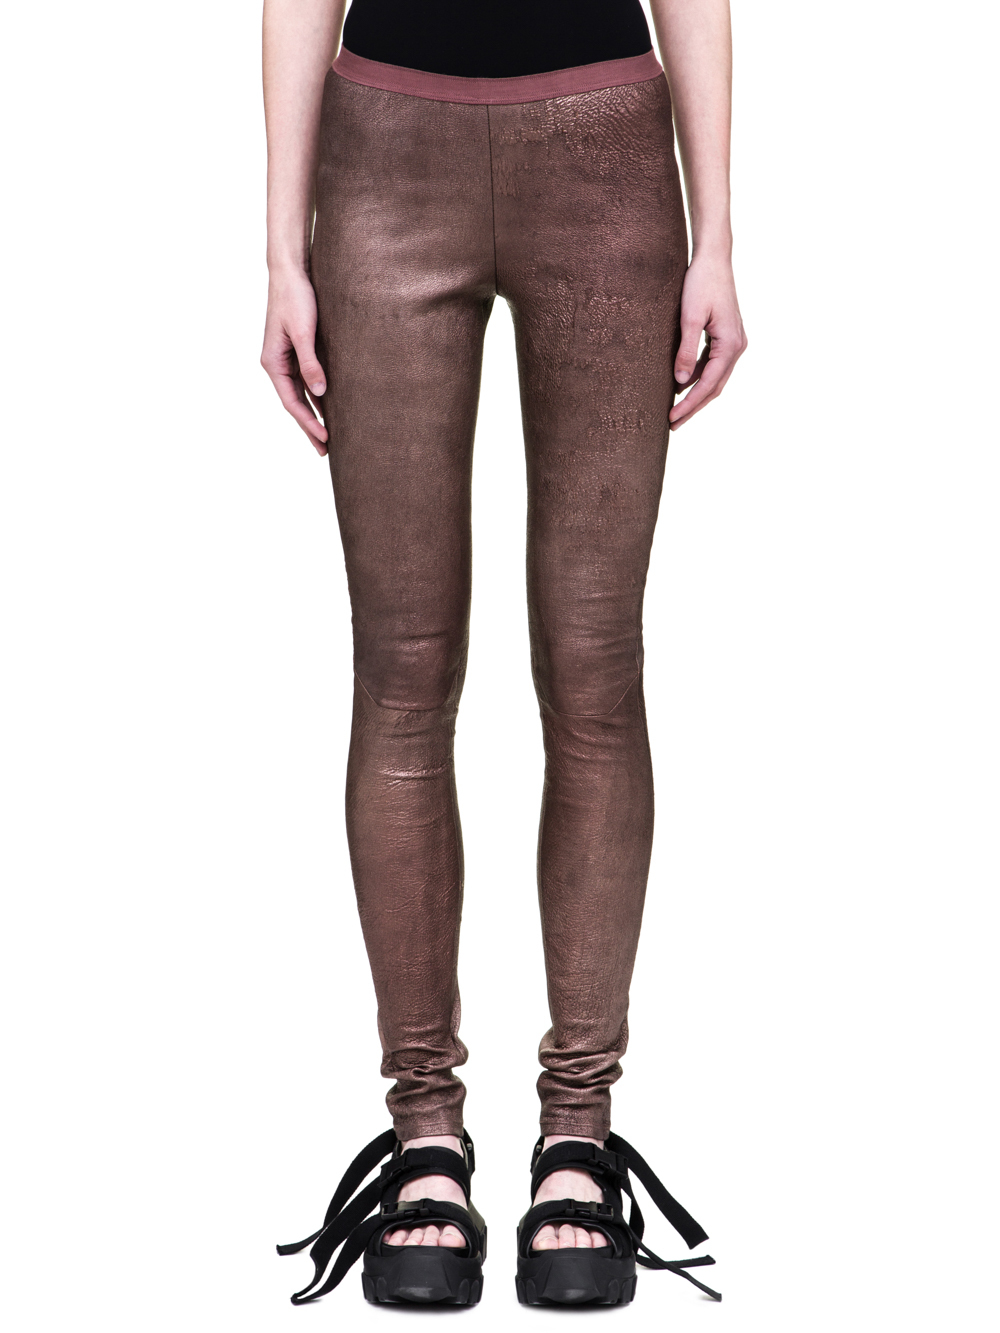 RICK OWENS SS19 BABEL LEATHER LEGGINGS IN METALLIC BLOOD RED STRETCH BLISTER LEATHER